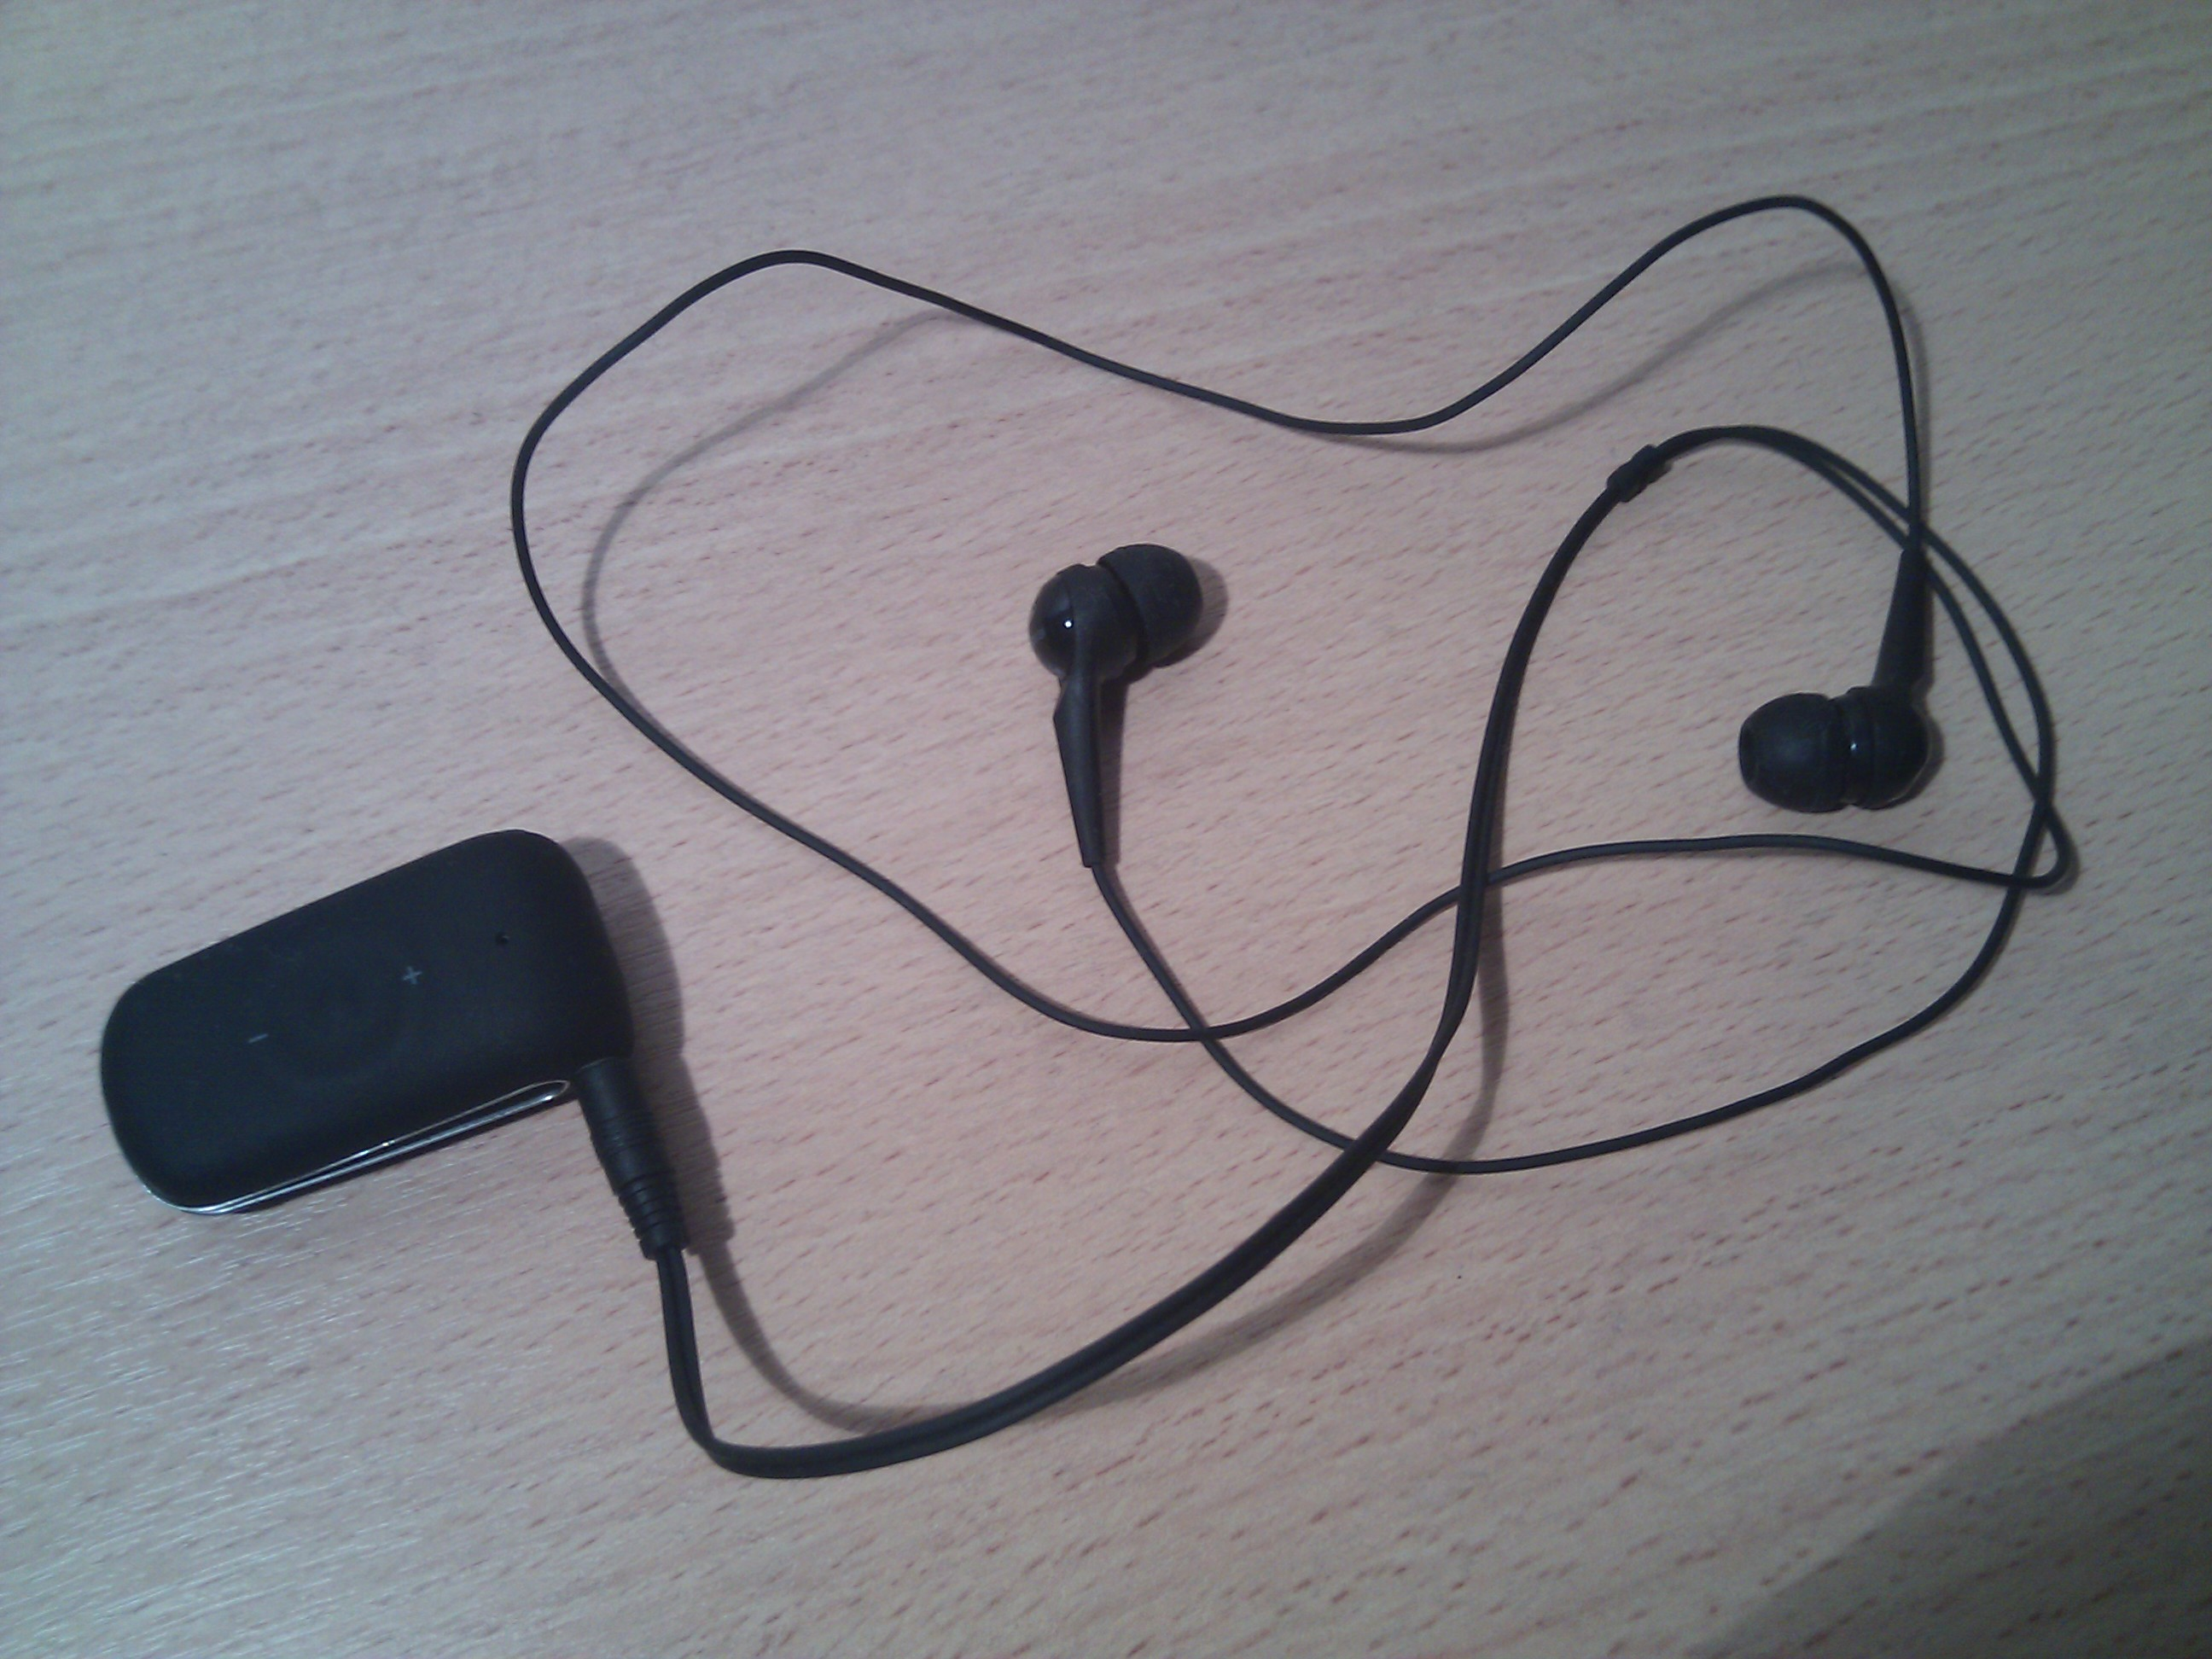 The Jabra Clipper, a Bluetooth headset, with earphones plugged into it.